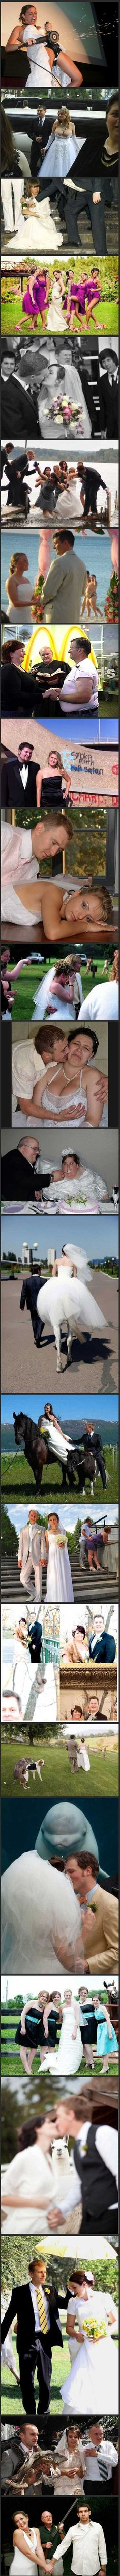 Most unfortunate wedding photos. Omg! What in the opposite of heaven